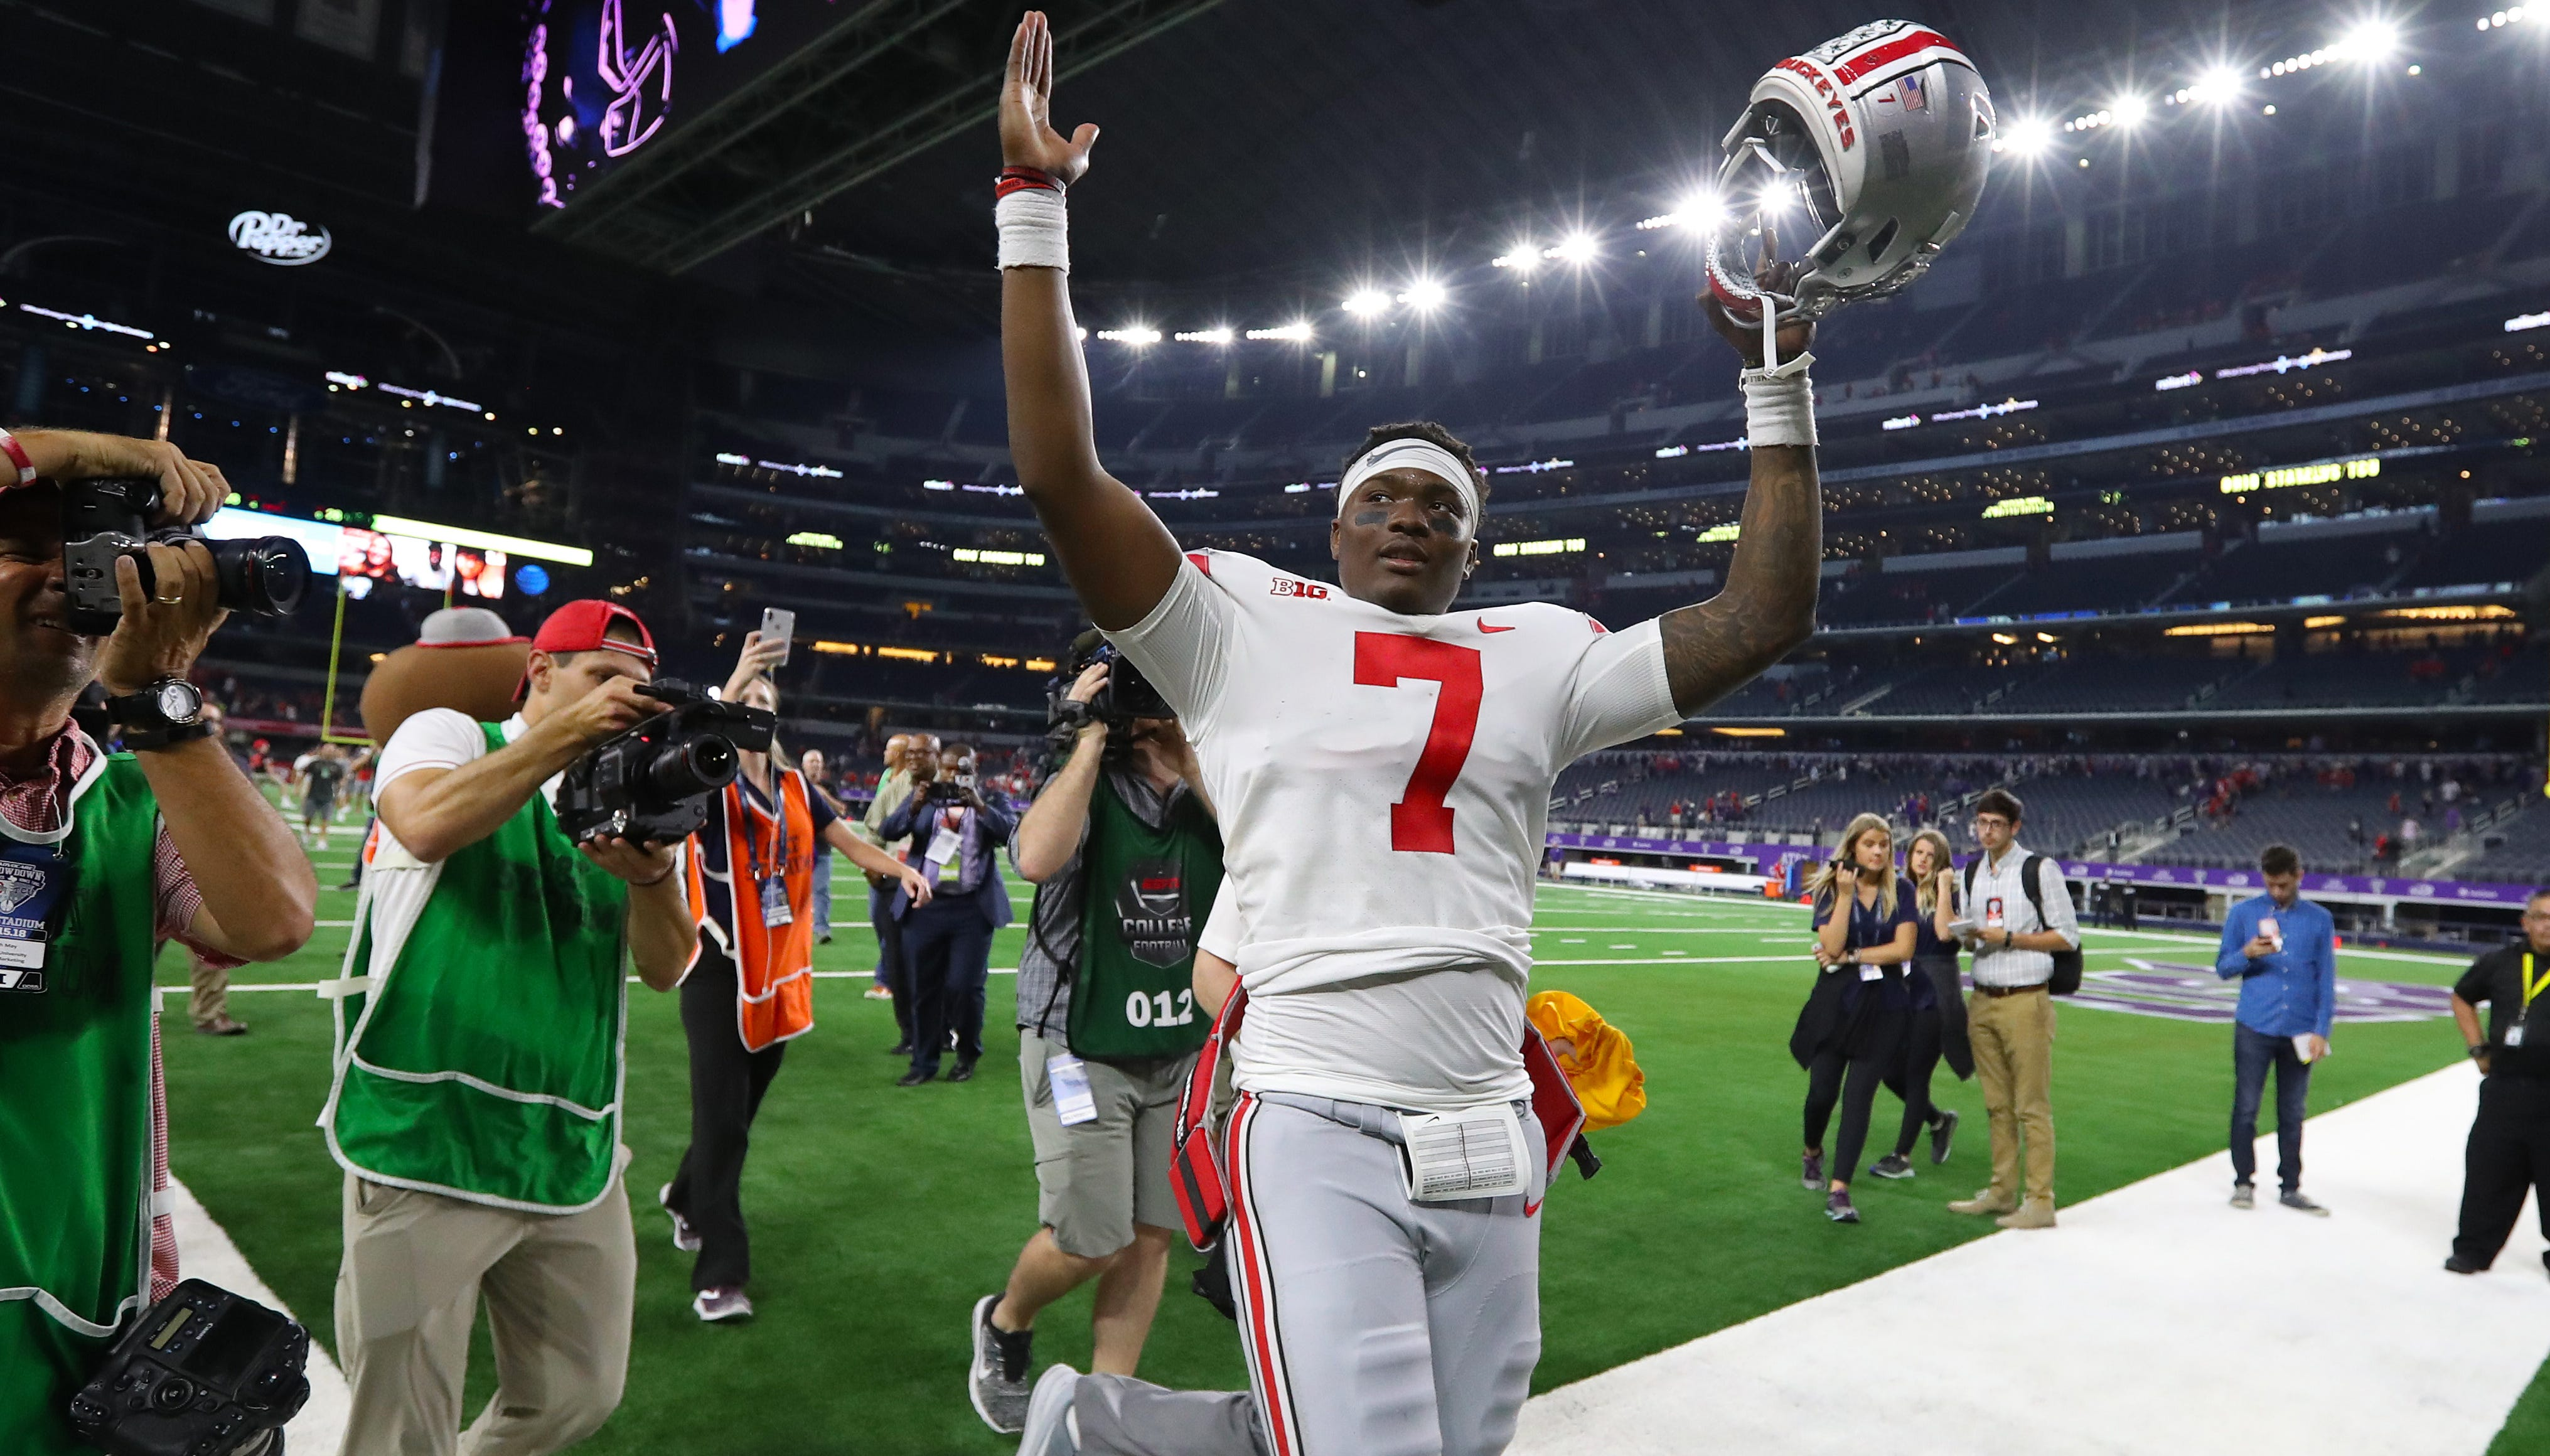 OSU scouting report: Day's impact will still be felt